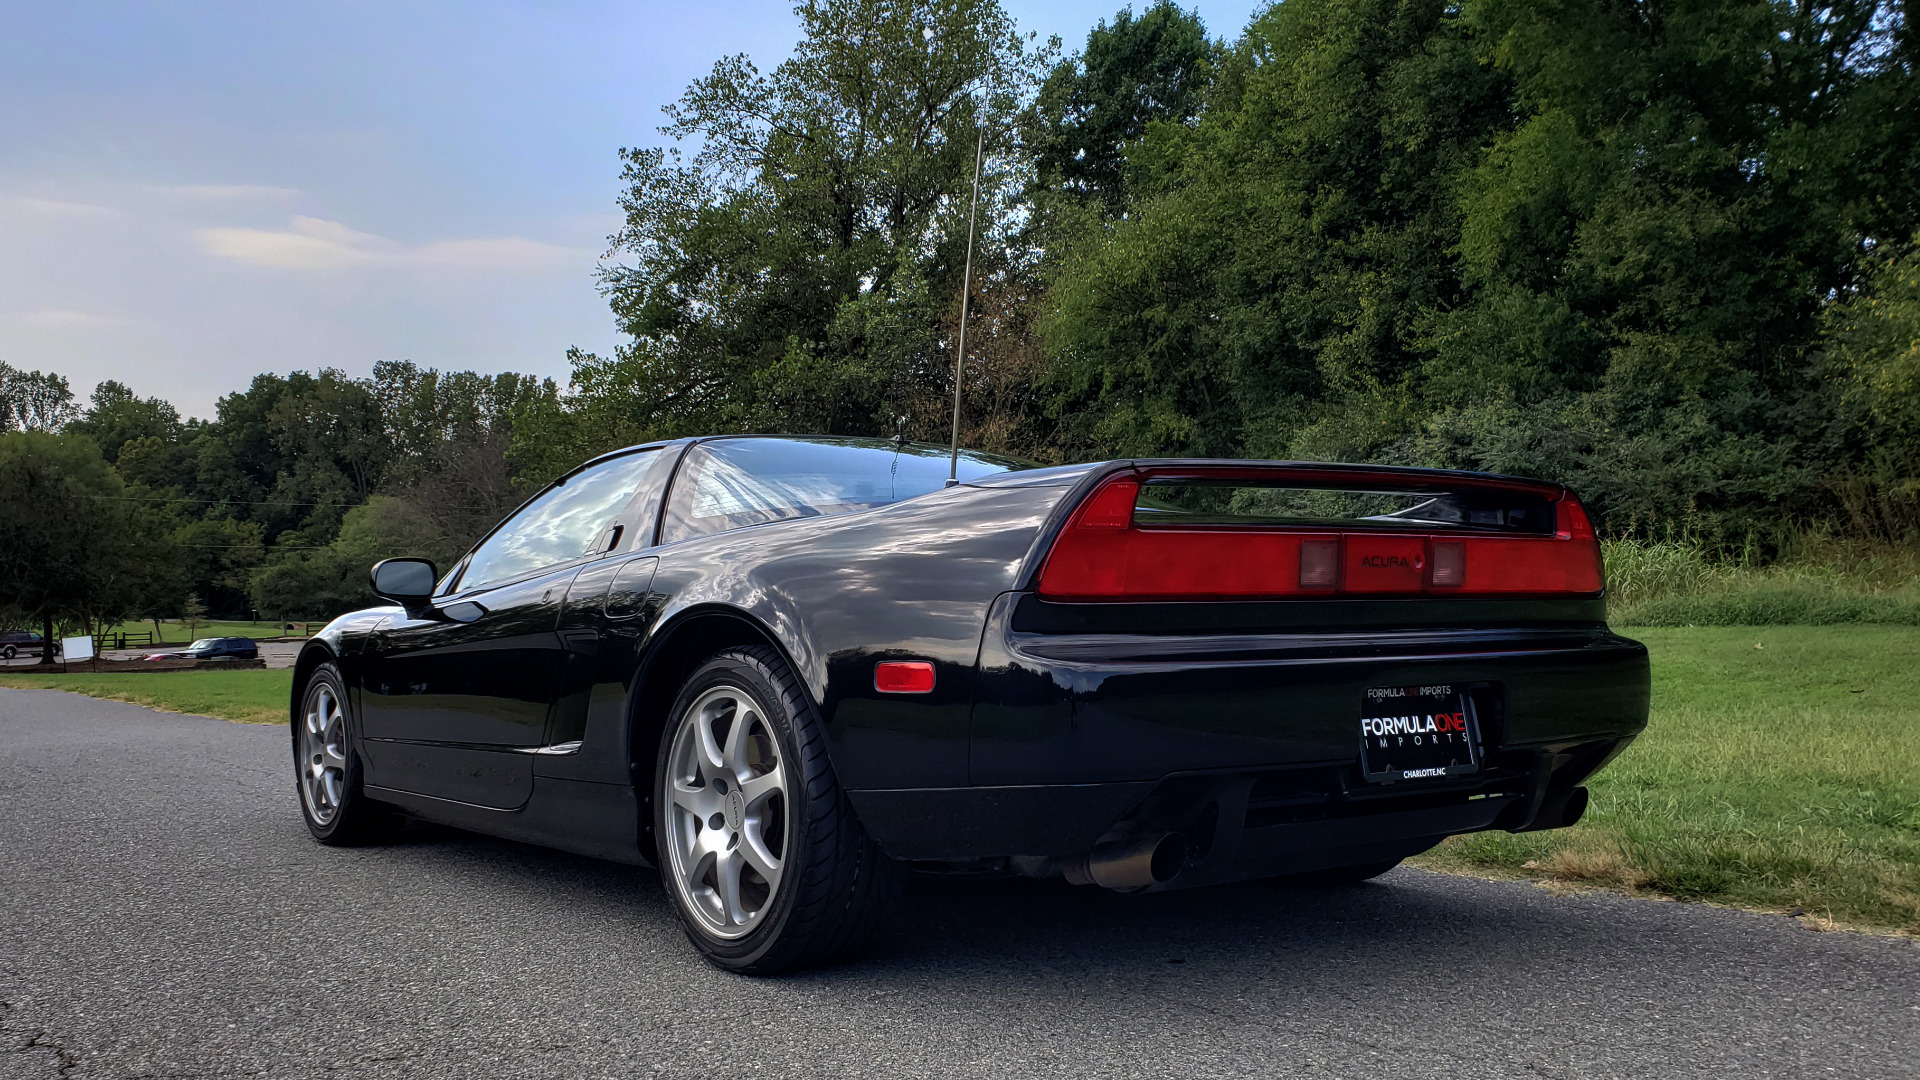 Used 1995 Acura NSX OPEN TOP / 5-SPD MAN / LOW MILES / SUPER CLEAN for sale Sold at Formula Imports in Charlotte NC 28227 9